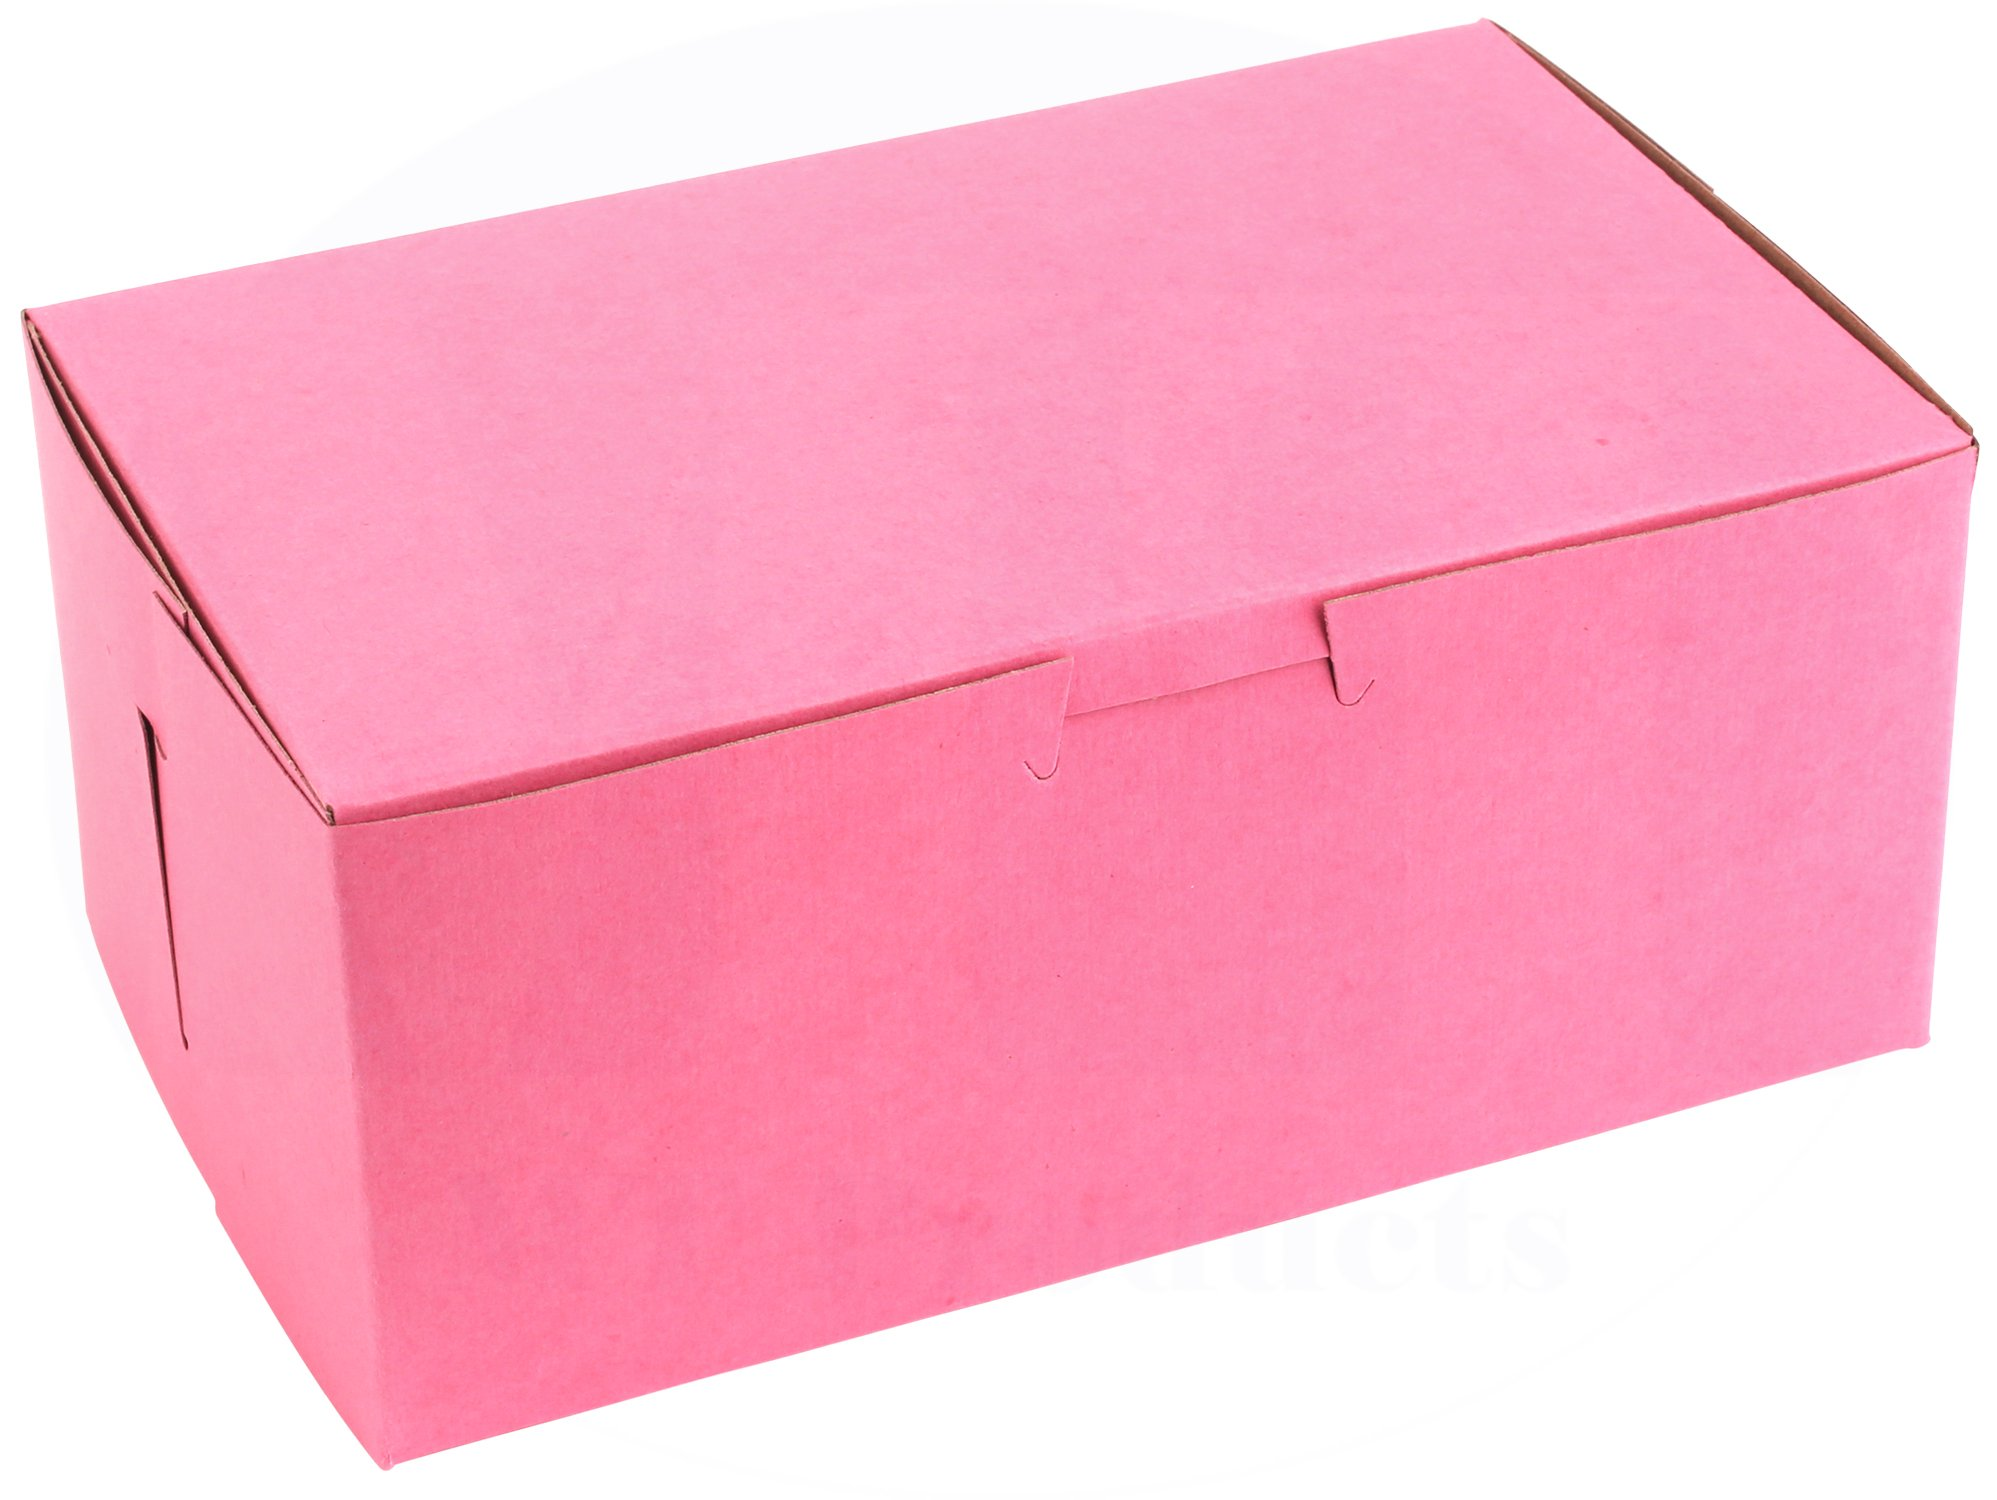 8 in Length x 5 in Width x 3 1/2 in Height Clay-Coated Paperboard Non-Window Lock Corner Pink Bakery Box by MT Products (Pack of 15)